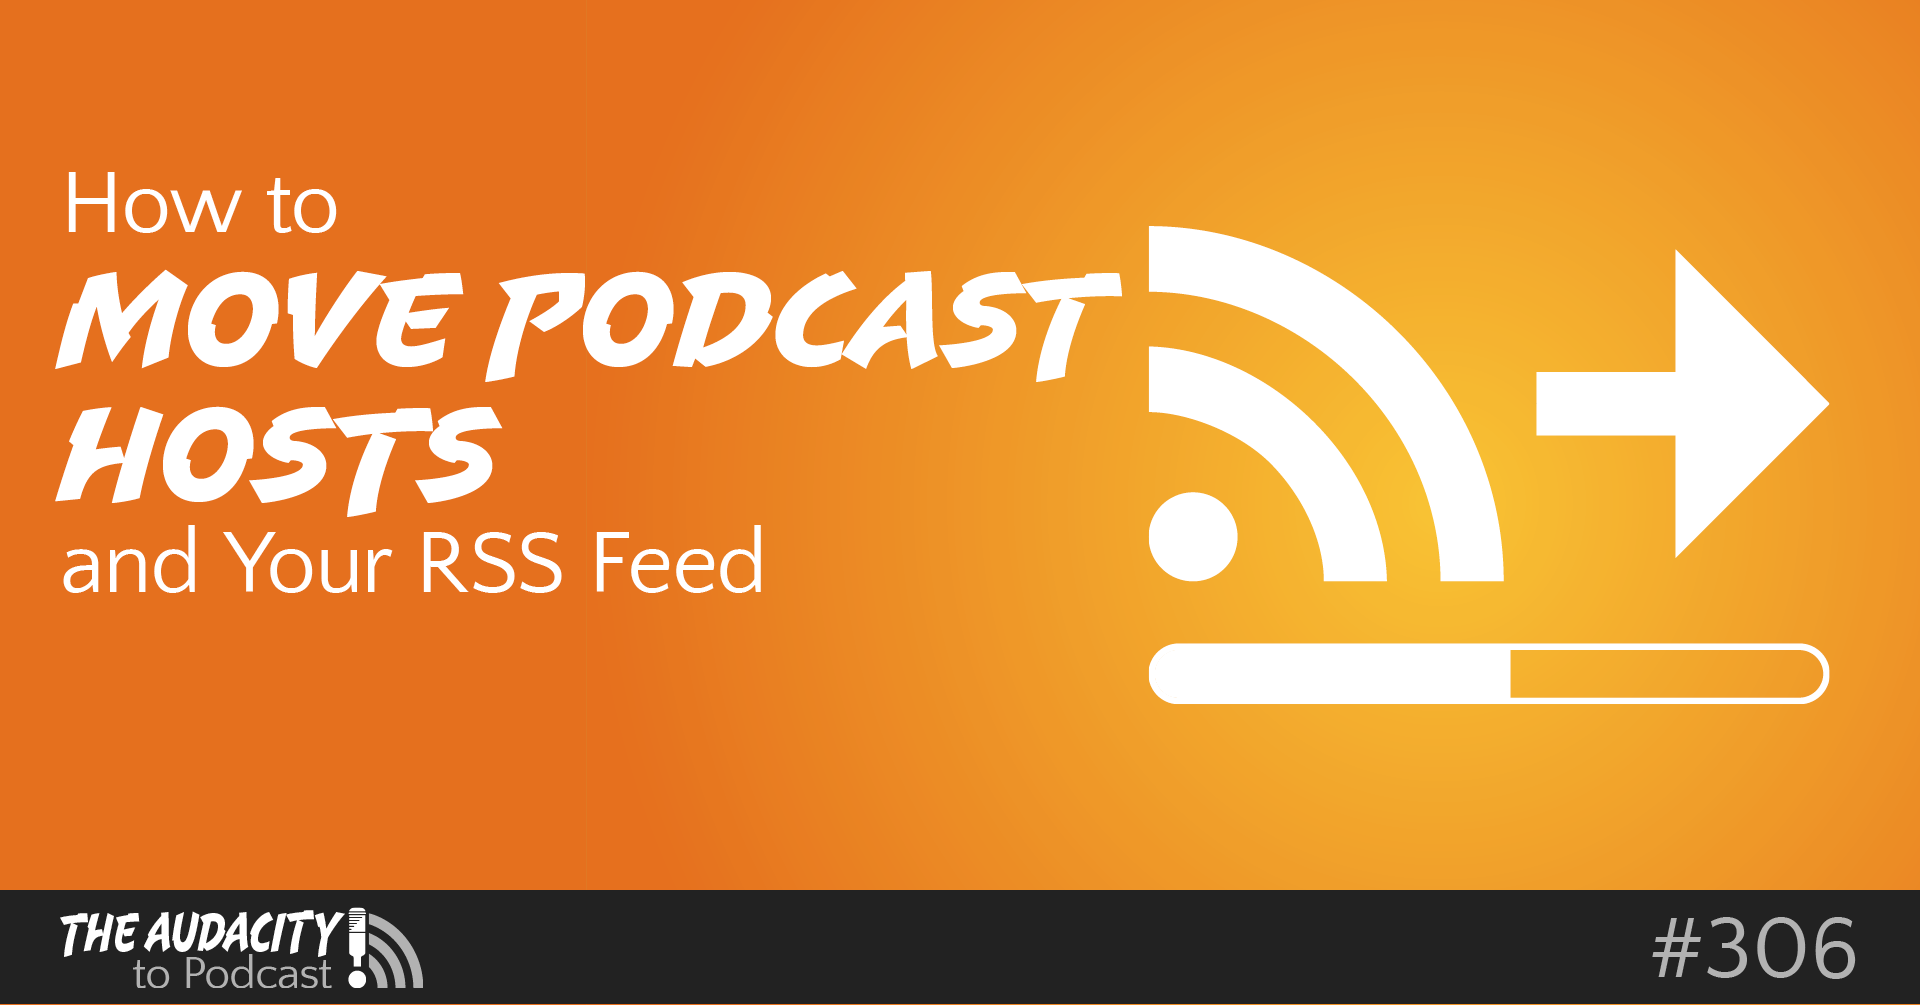 How-to-Move-Podcast-Hosts-and-Your-RSS-Feed-wide.png